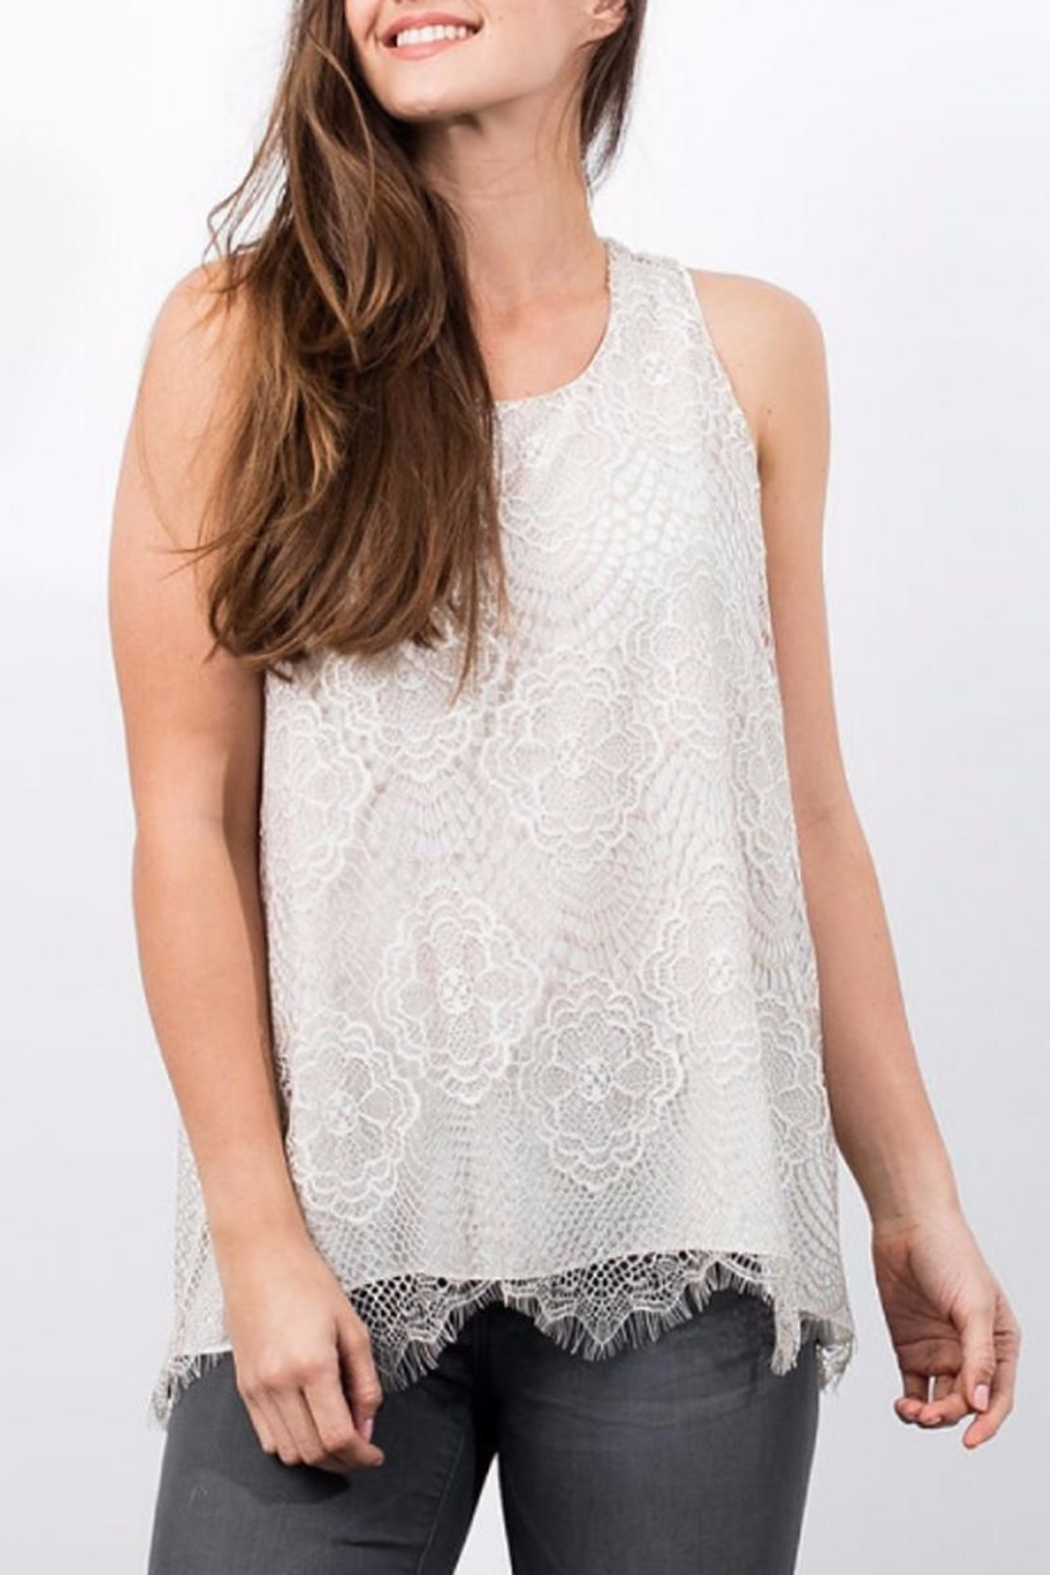 Lola & Sophie Sleeveless Lace Top - Main Image